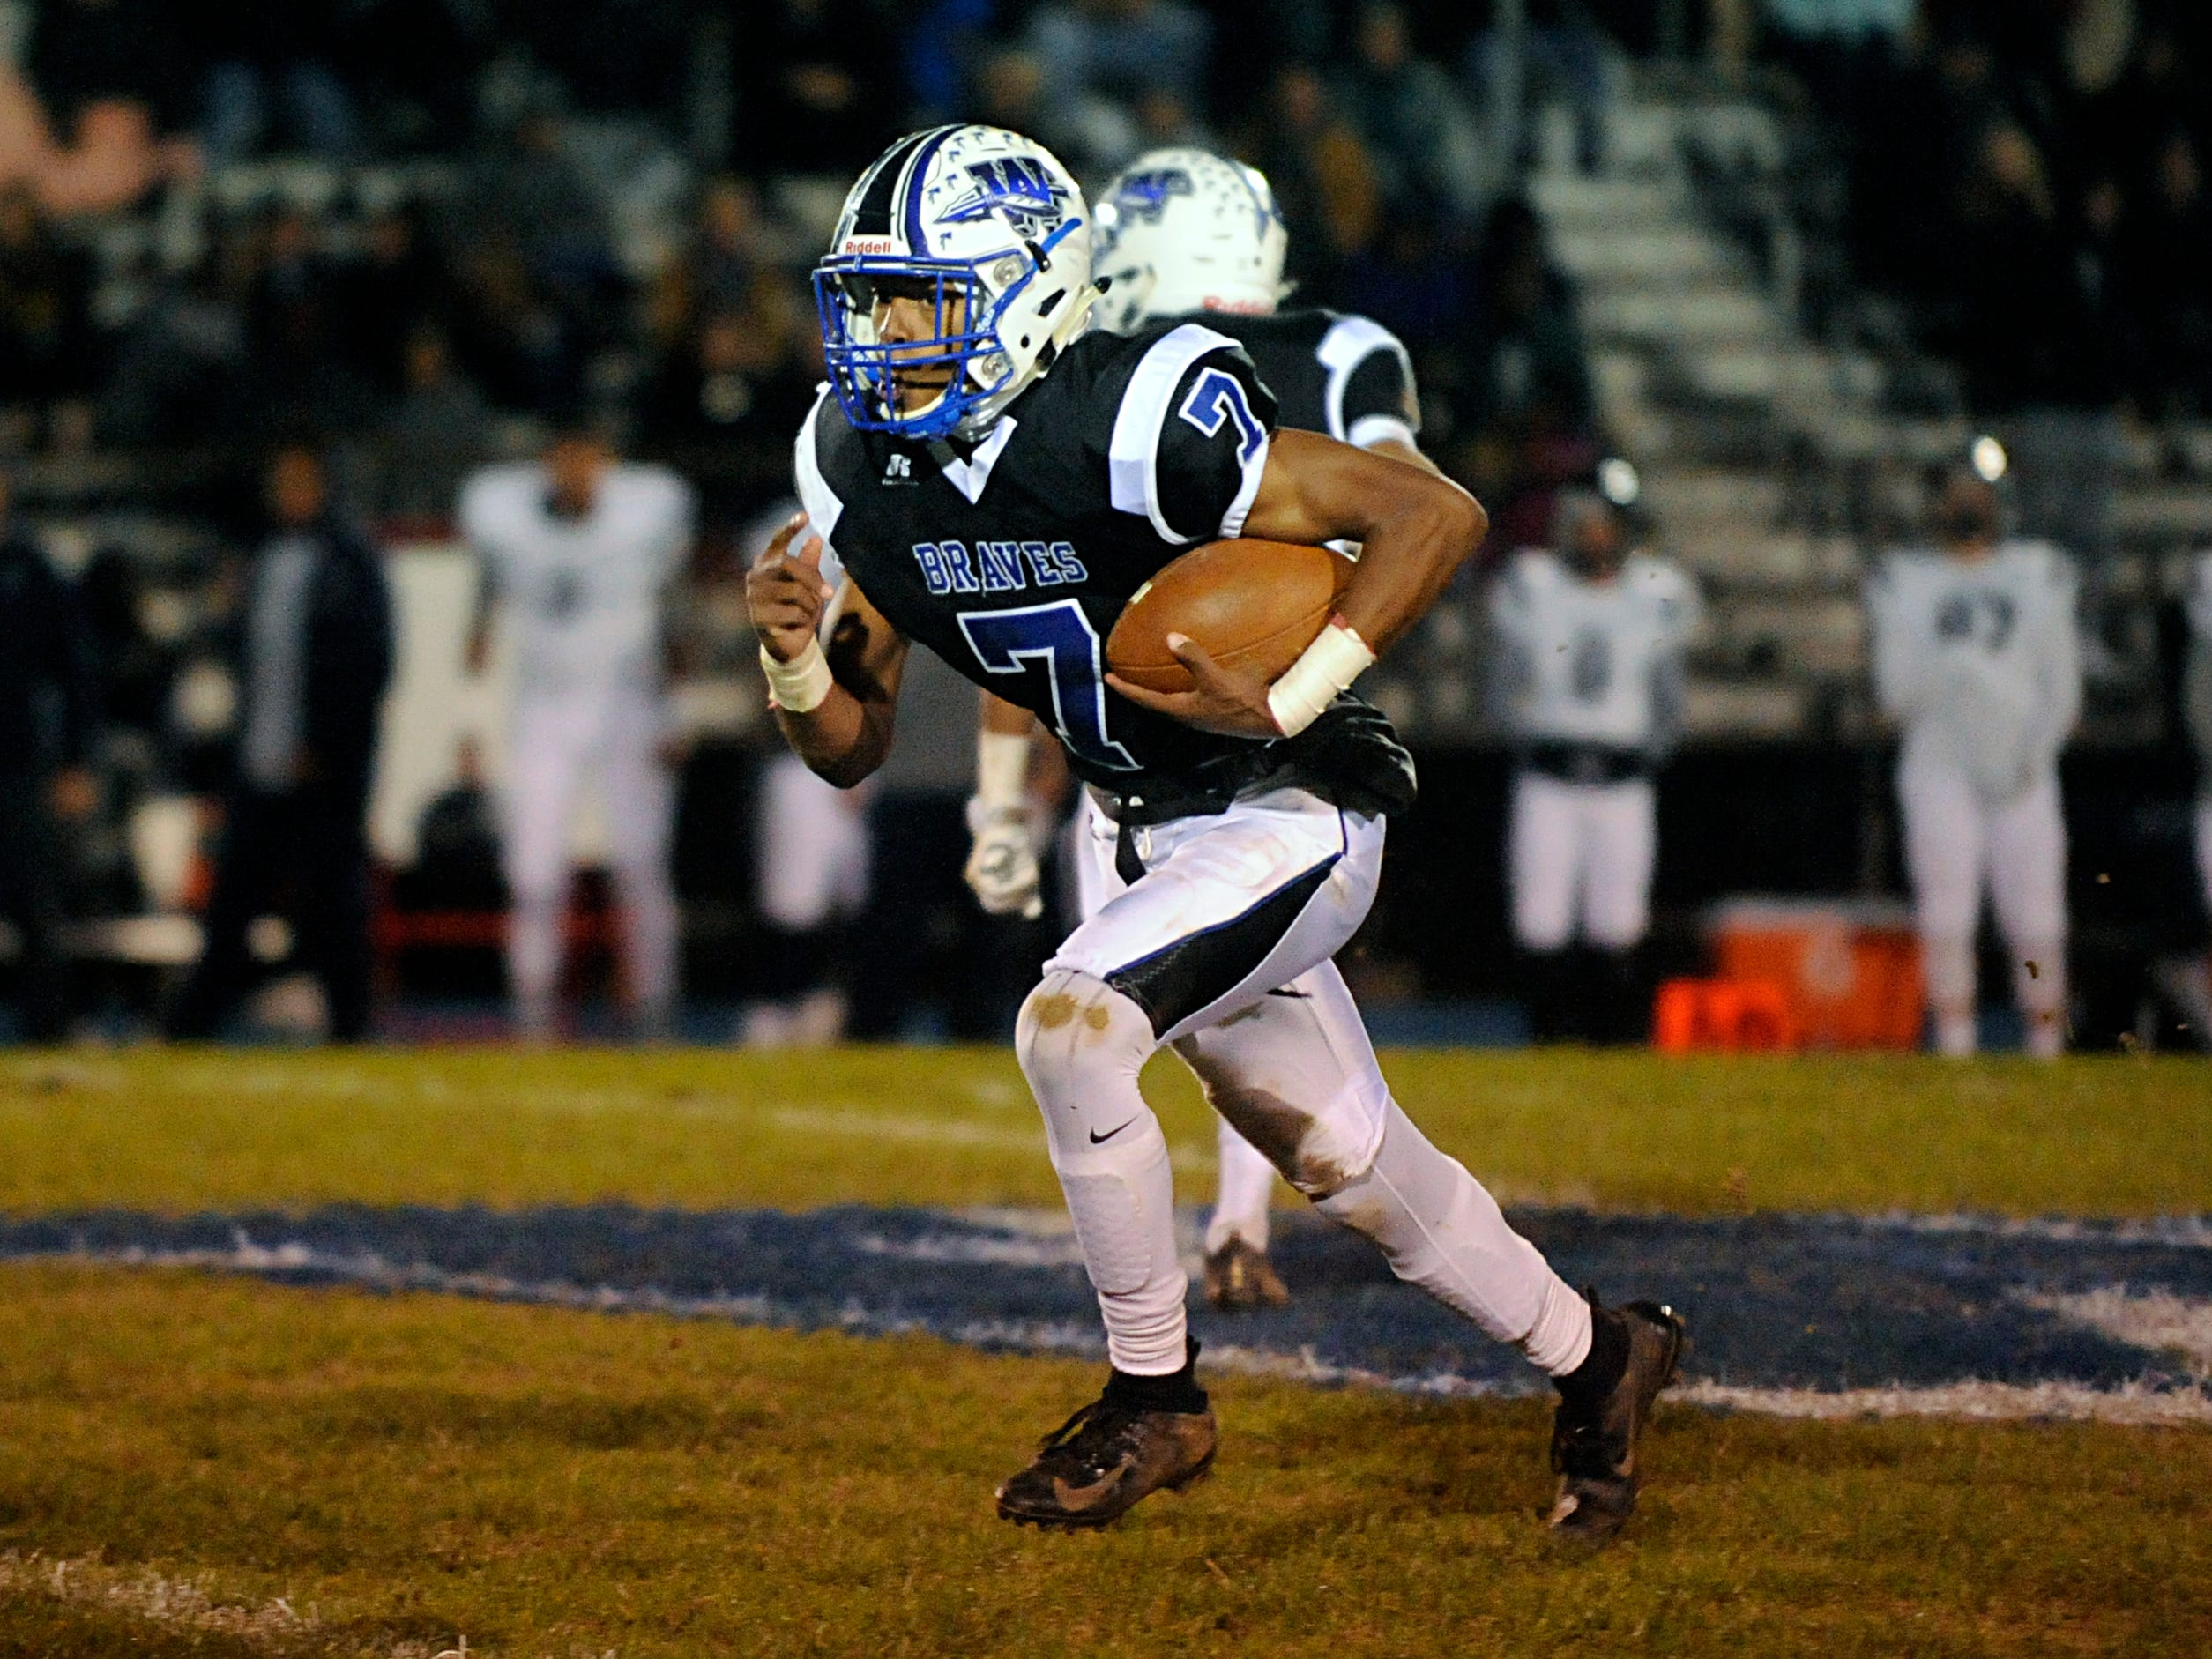 Williamstown QB, Jonathan Collins runs for a gain against visiting St. Augustine. The Braves topped the Hermits, 14-7, on Friday, October 26, 2018.